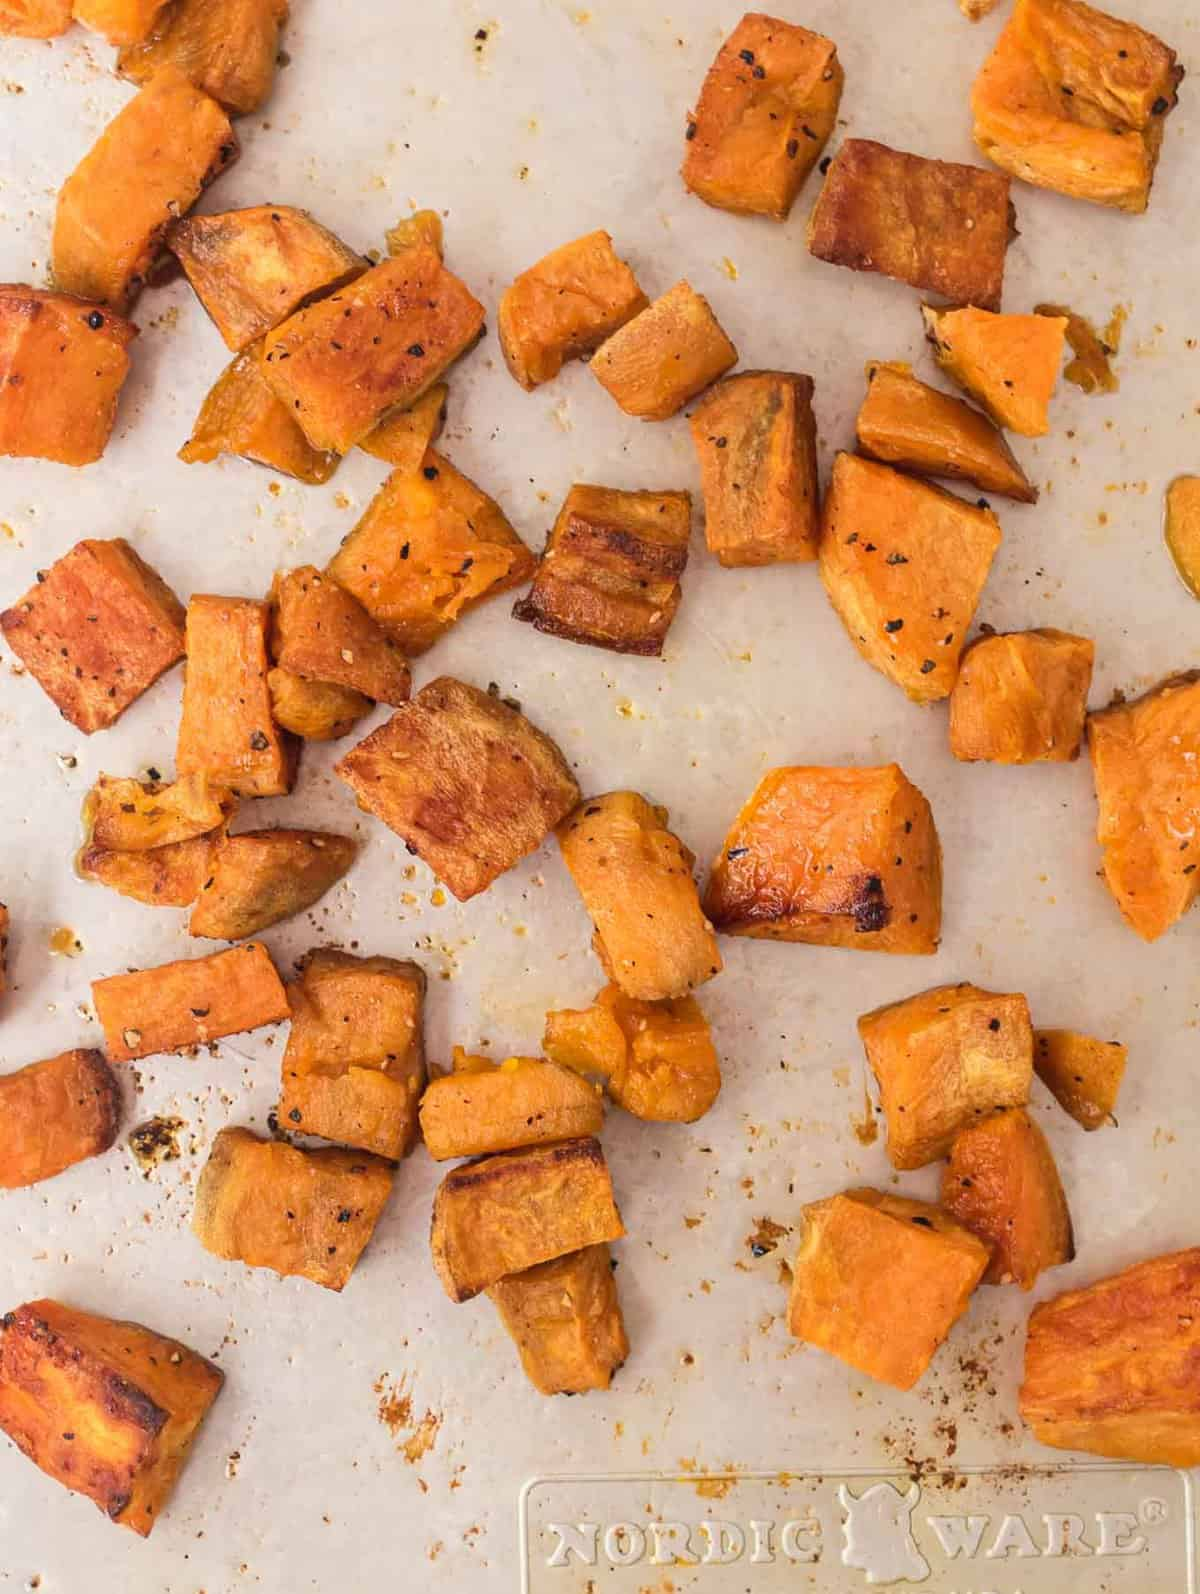 roasted sweet potatoes cubed on a baking sheet